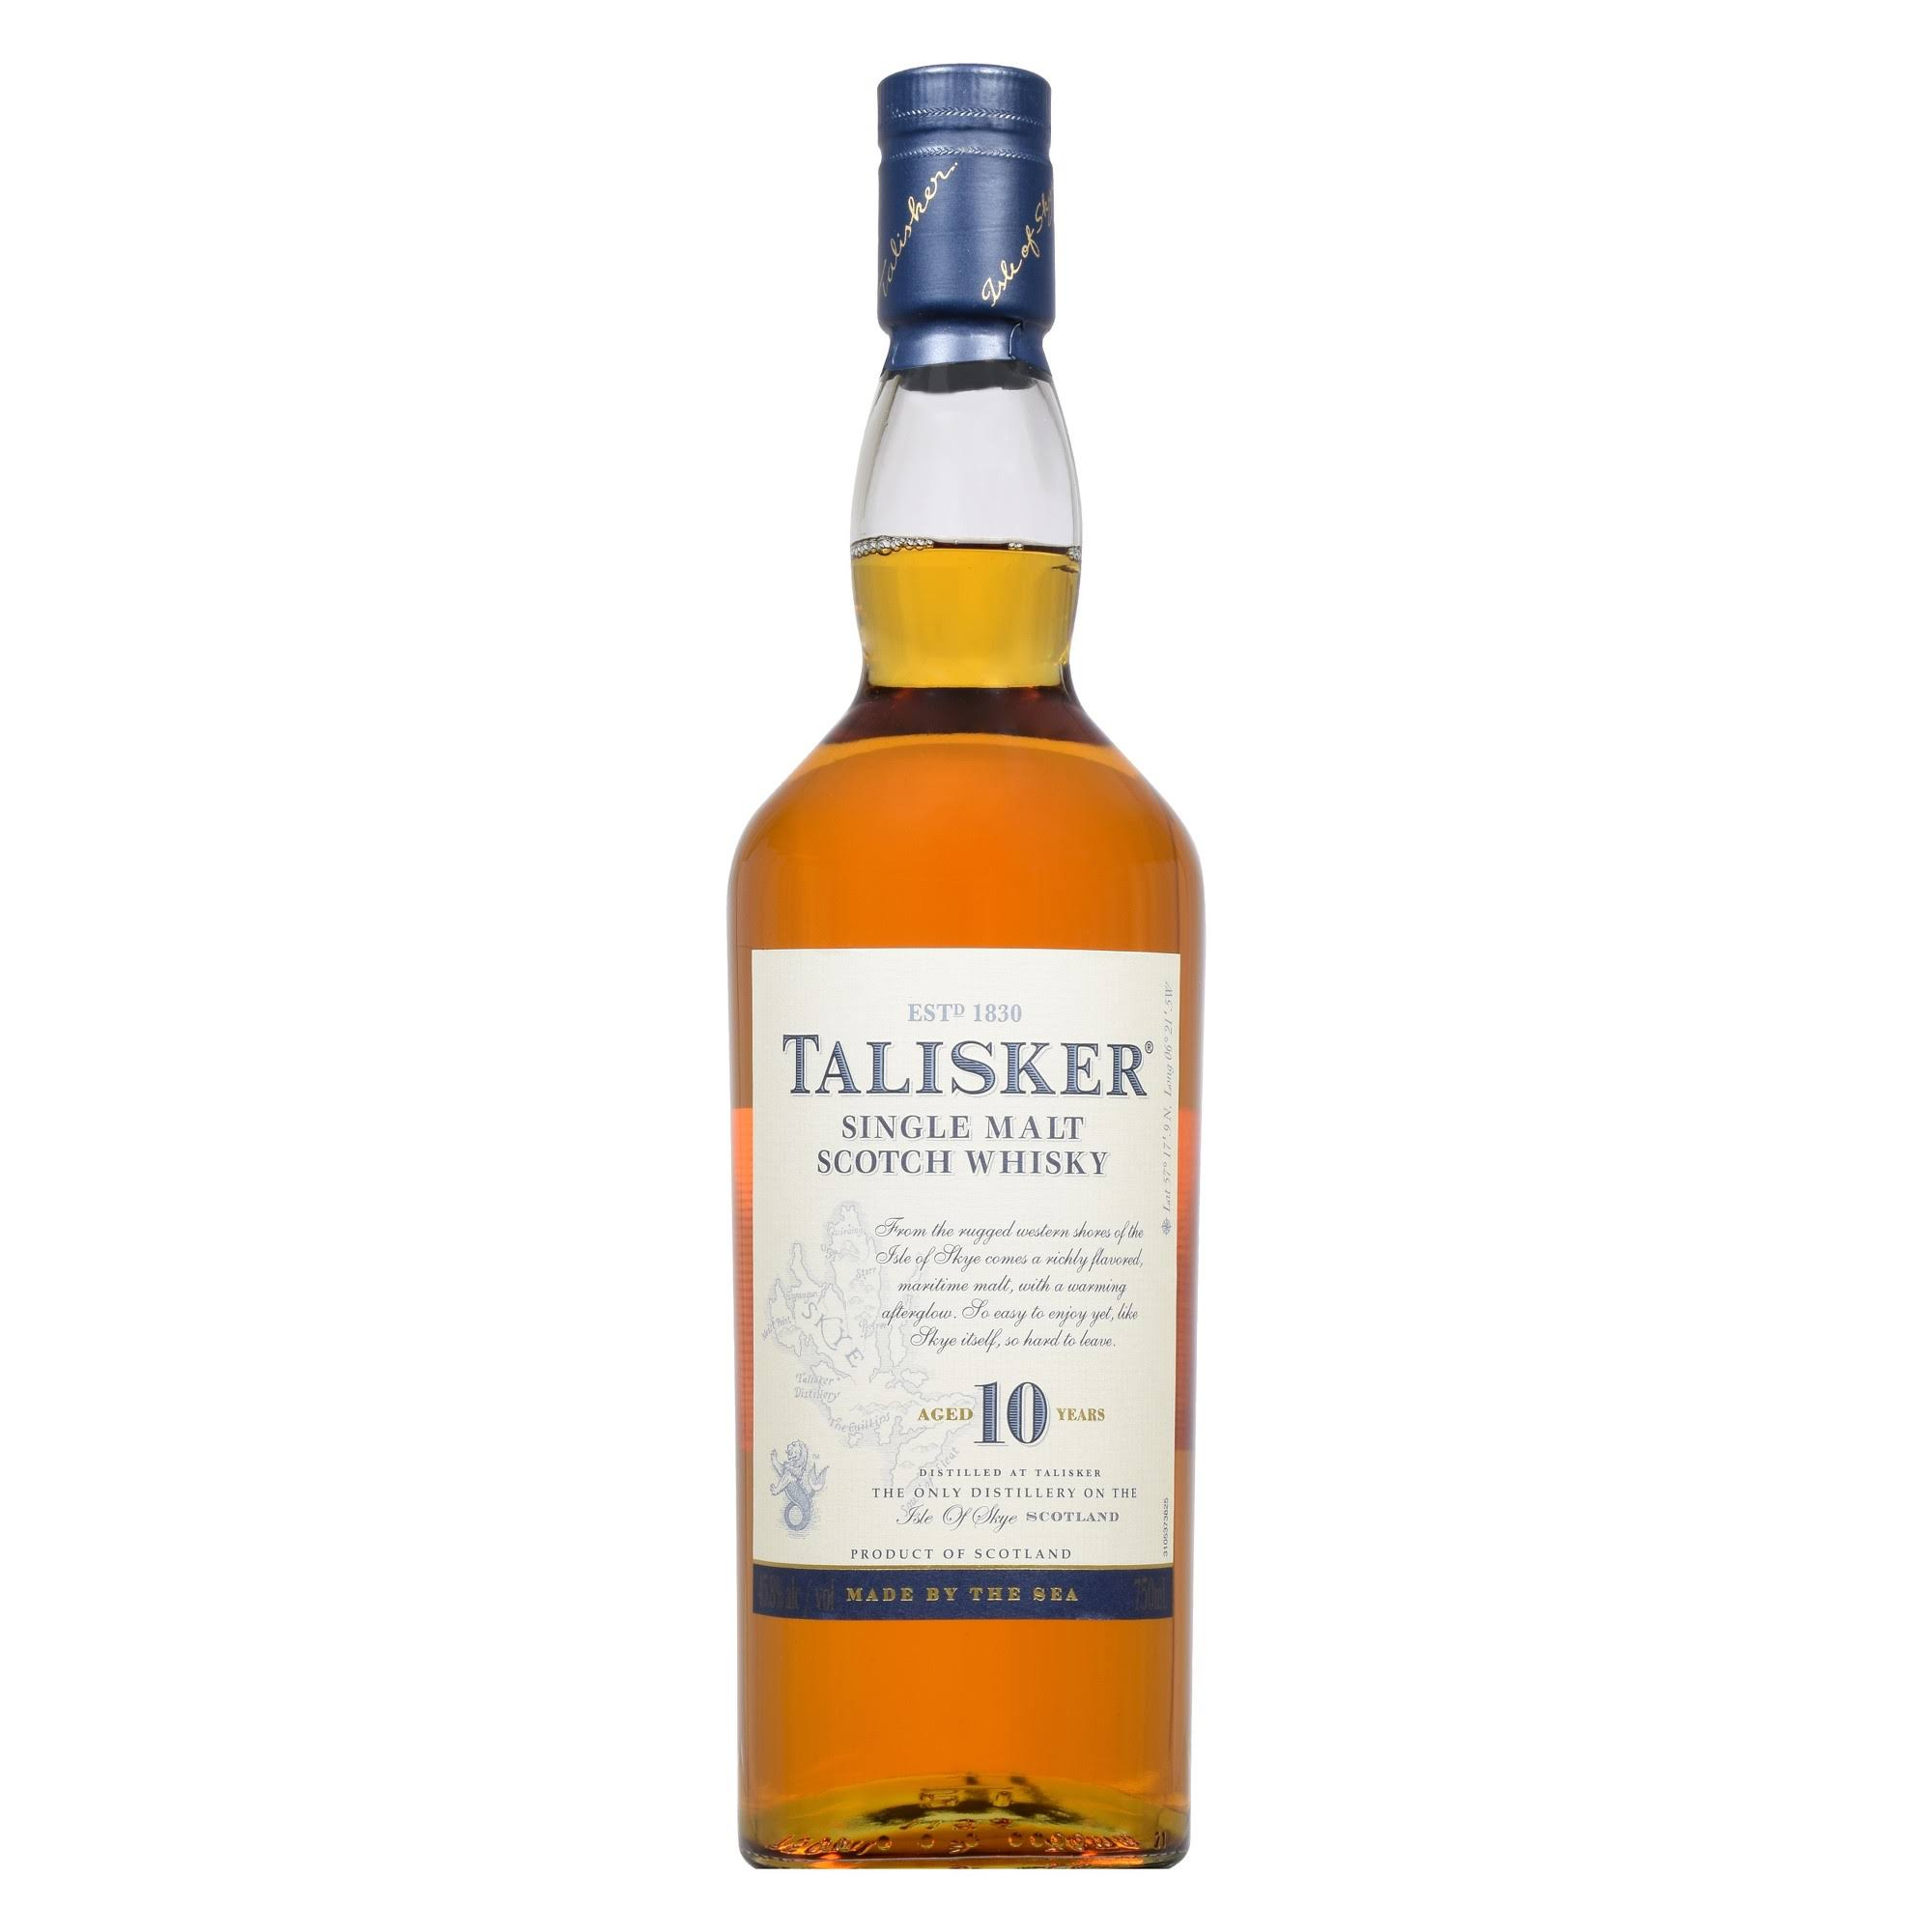 Talisker Whisky, Scotch, Single Malt - 750 ml